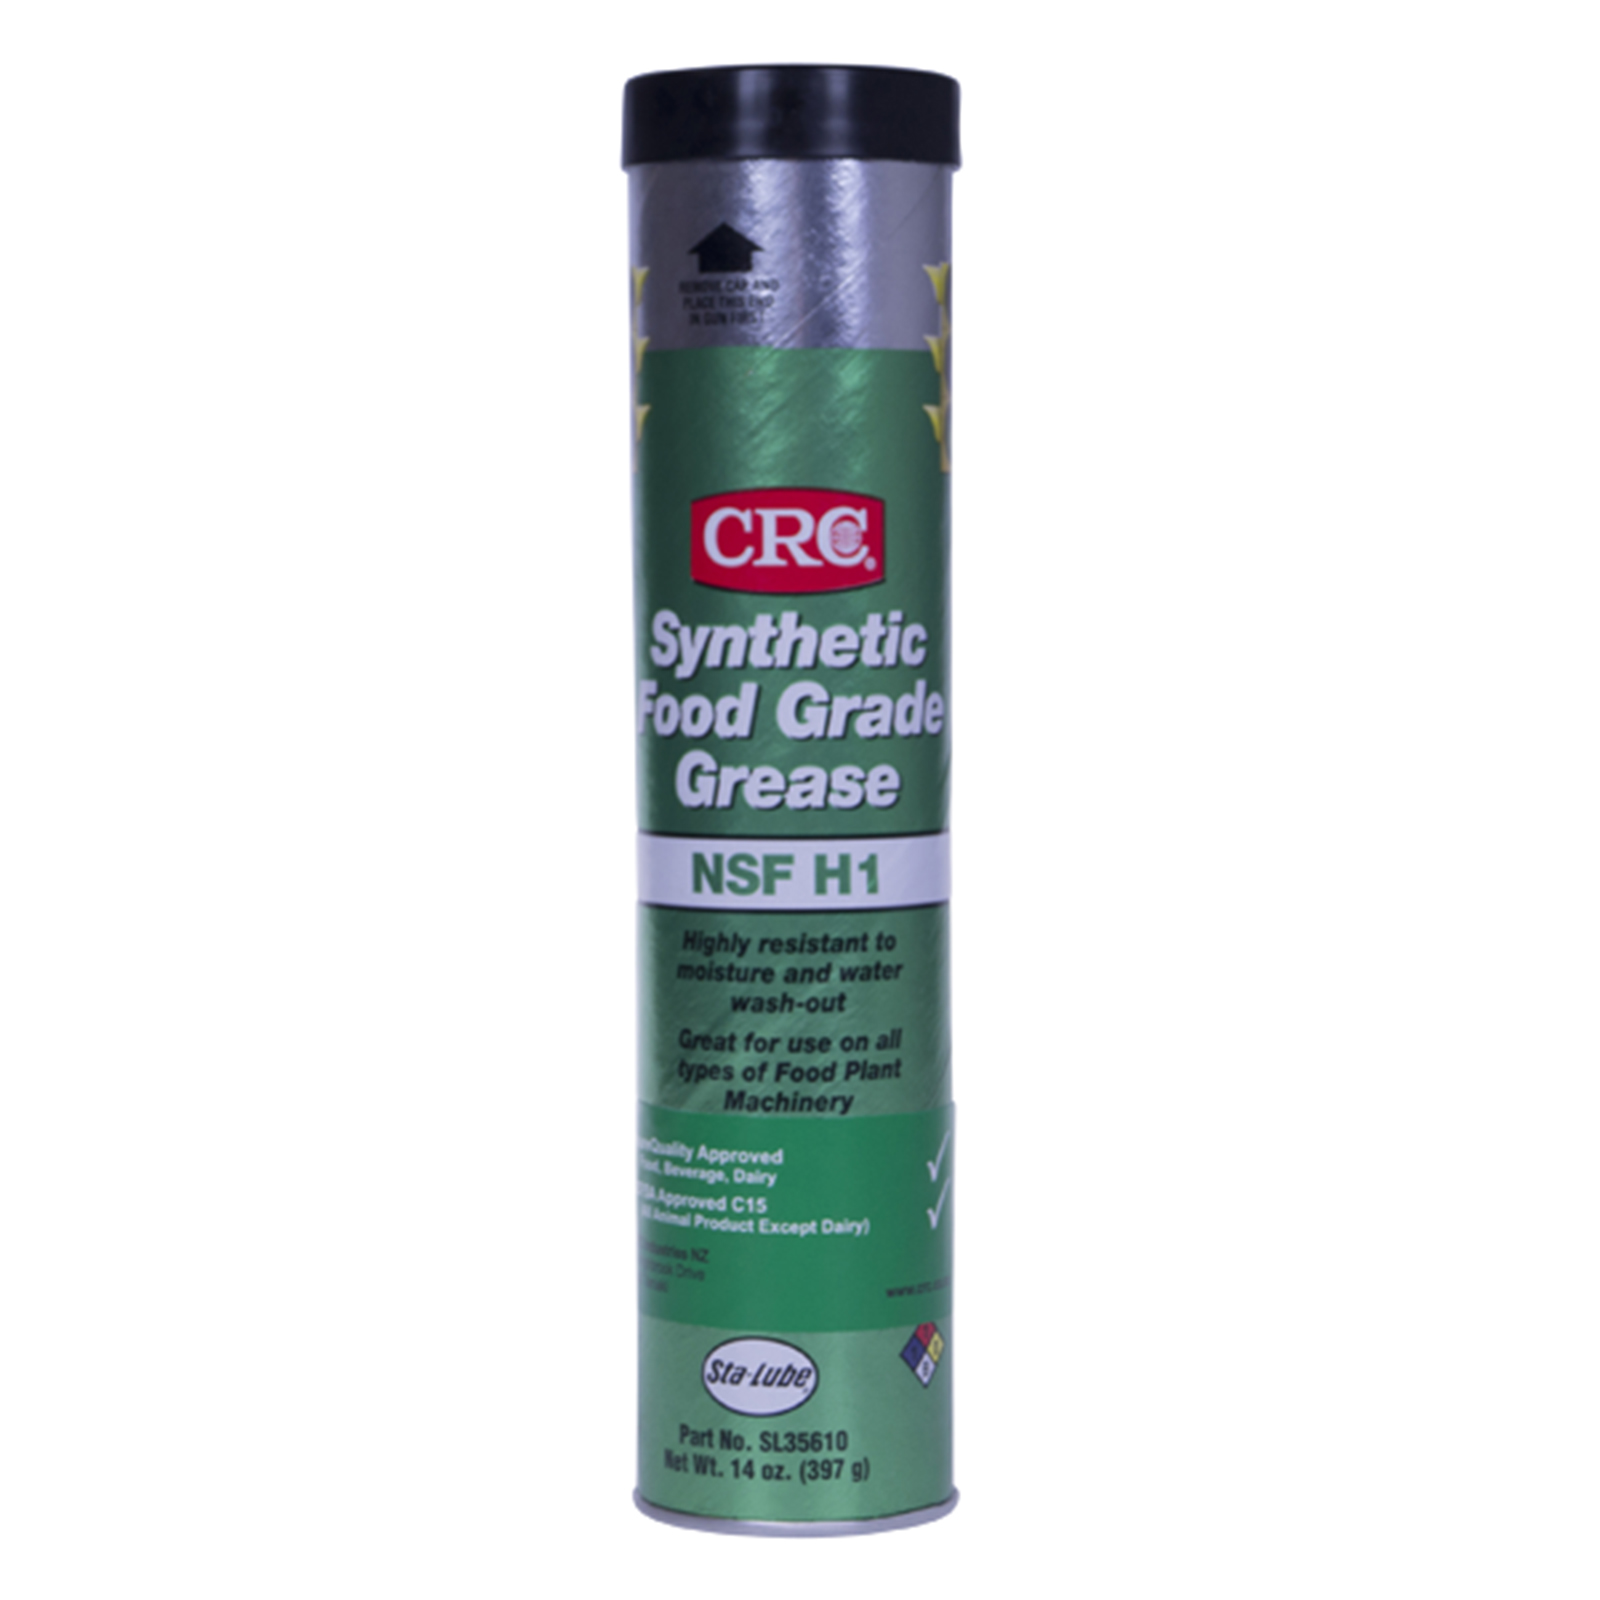 CRC FOOD GRADE SYNTHETIC GREASE 397G